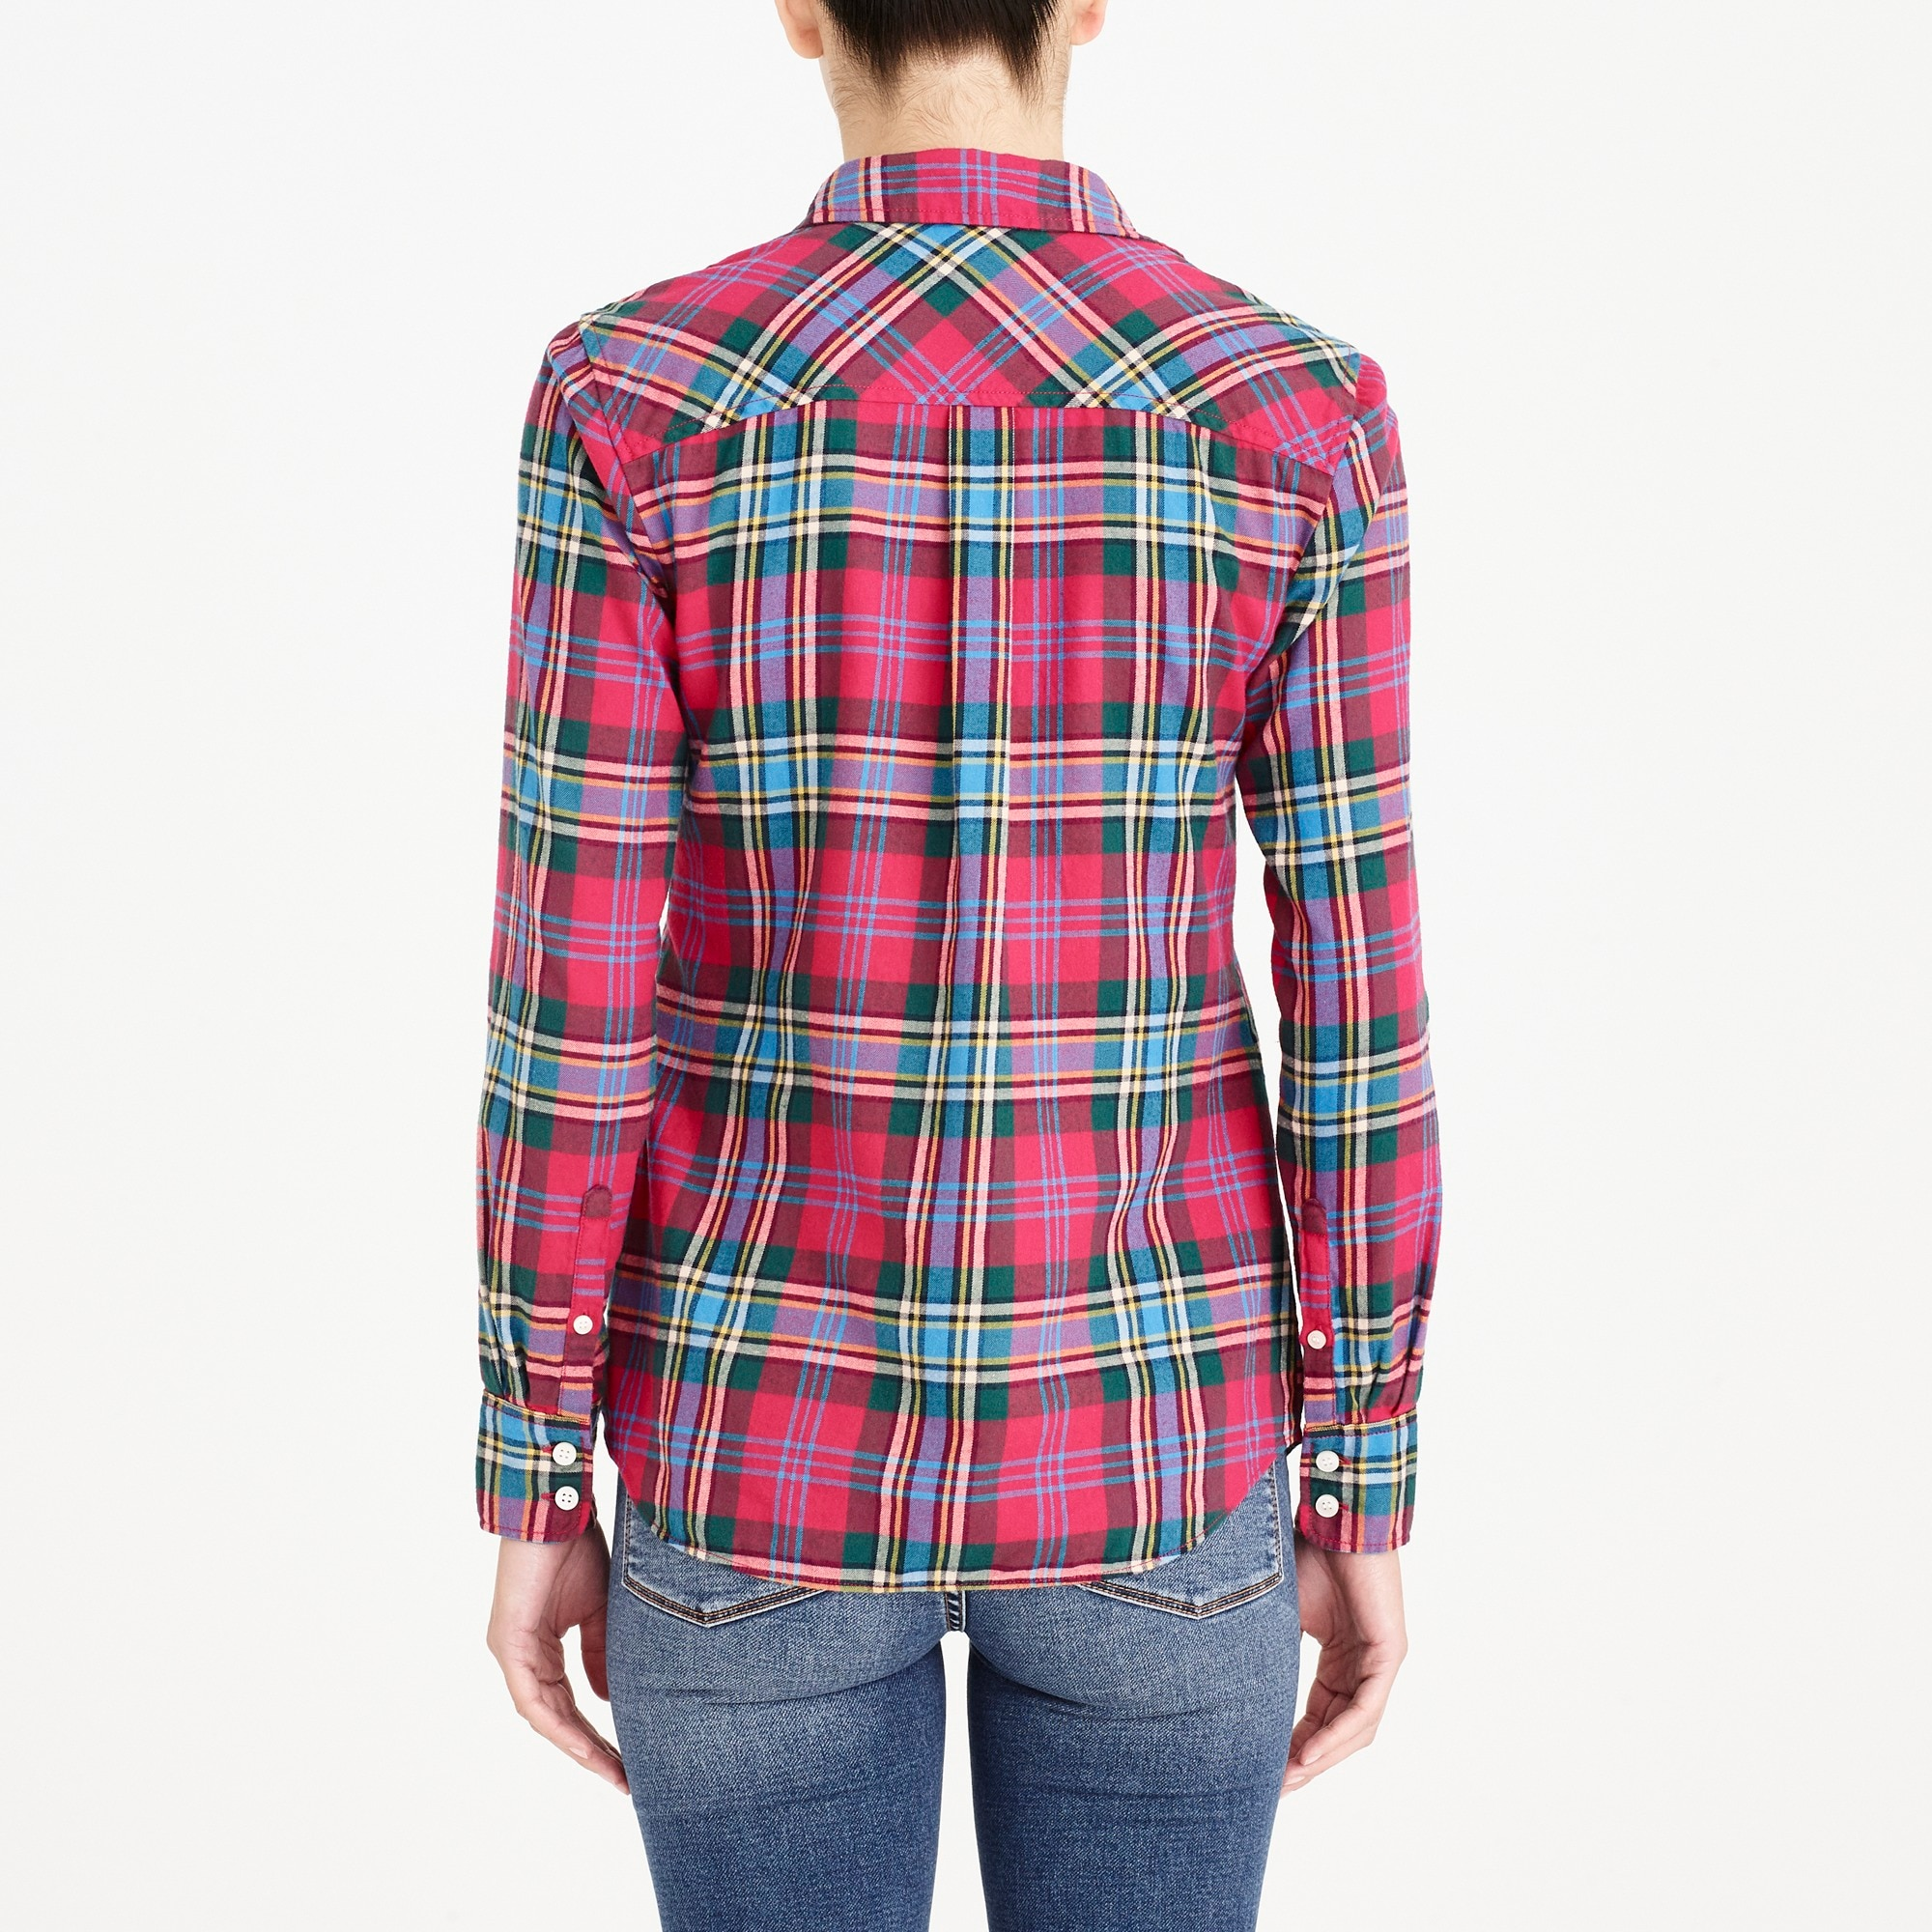 Image 3 for Flannel shirt